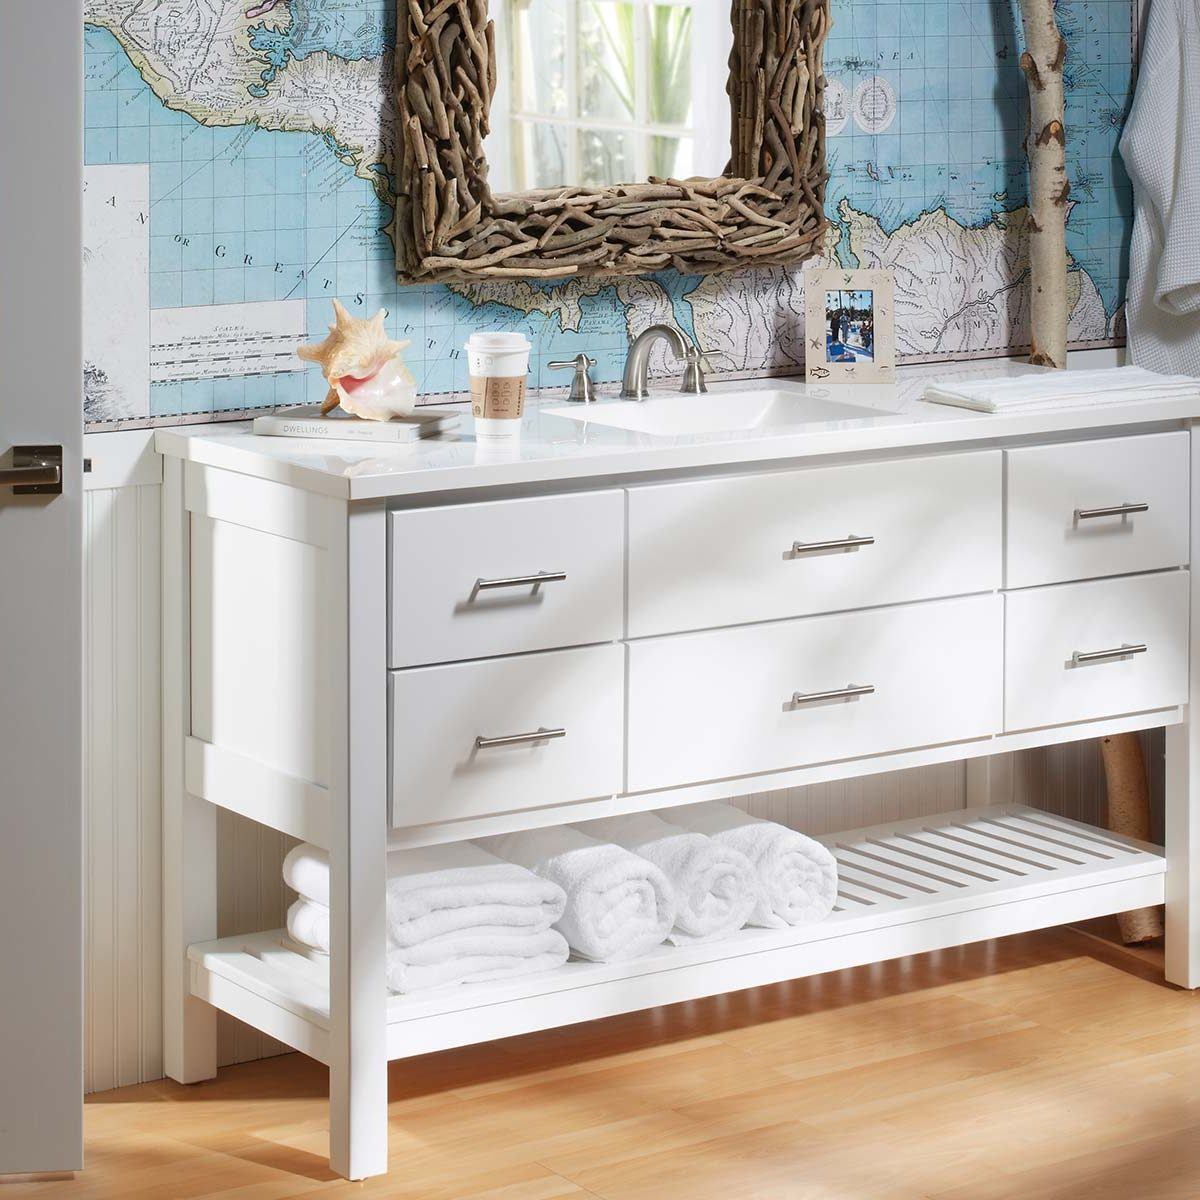 Interlude-white-6-drawer-overall-horiz